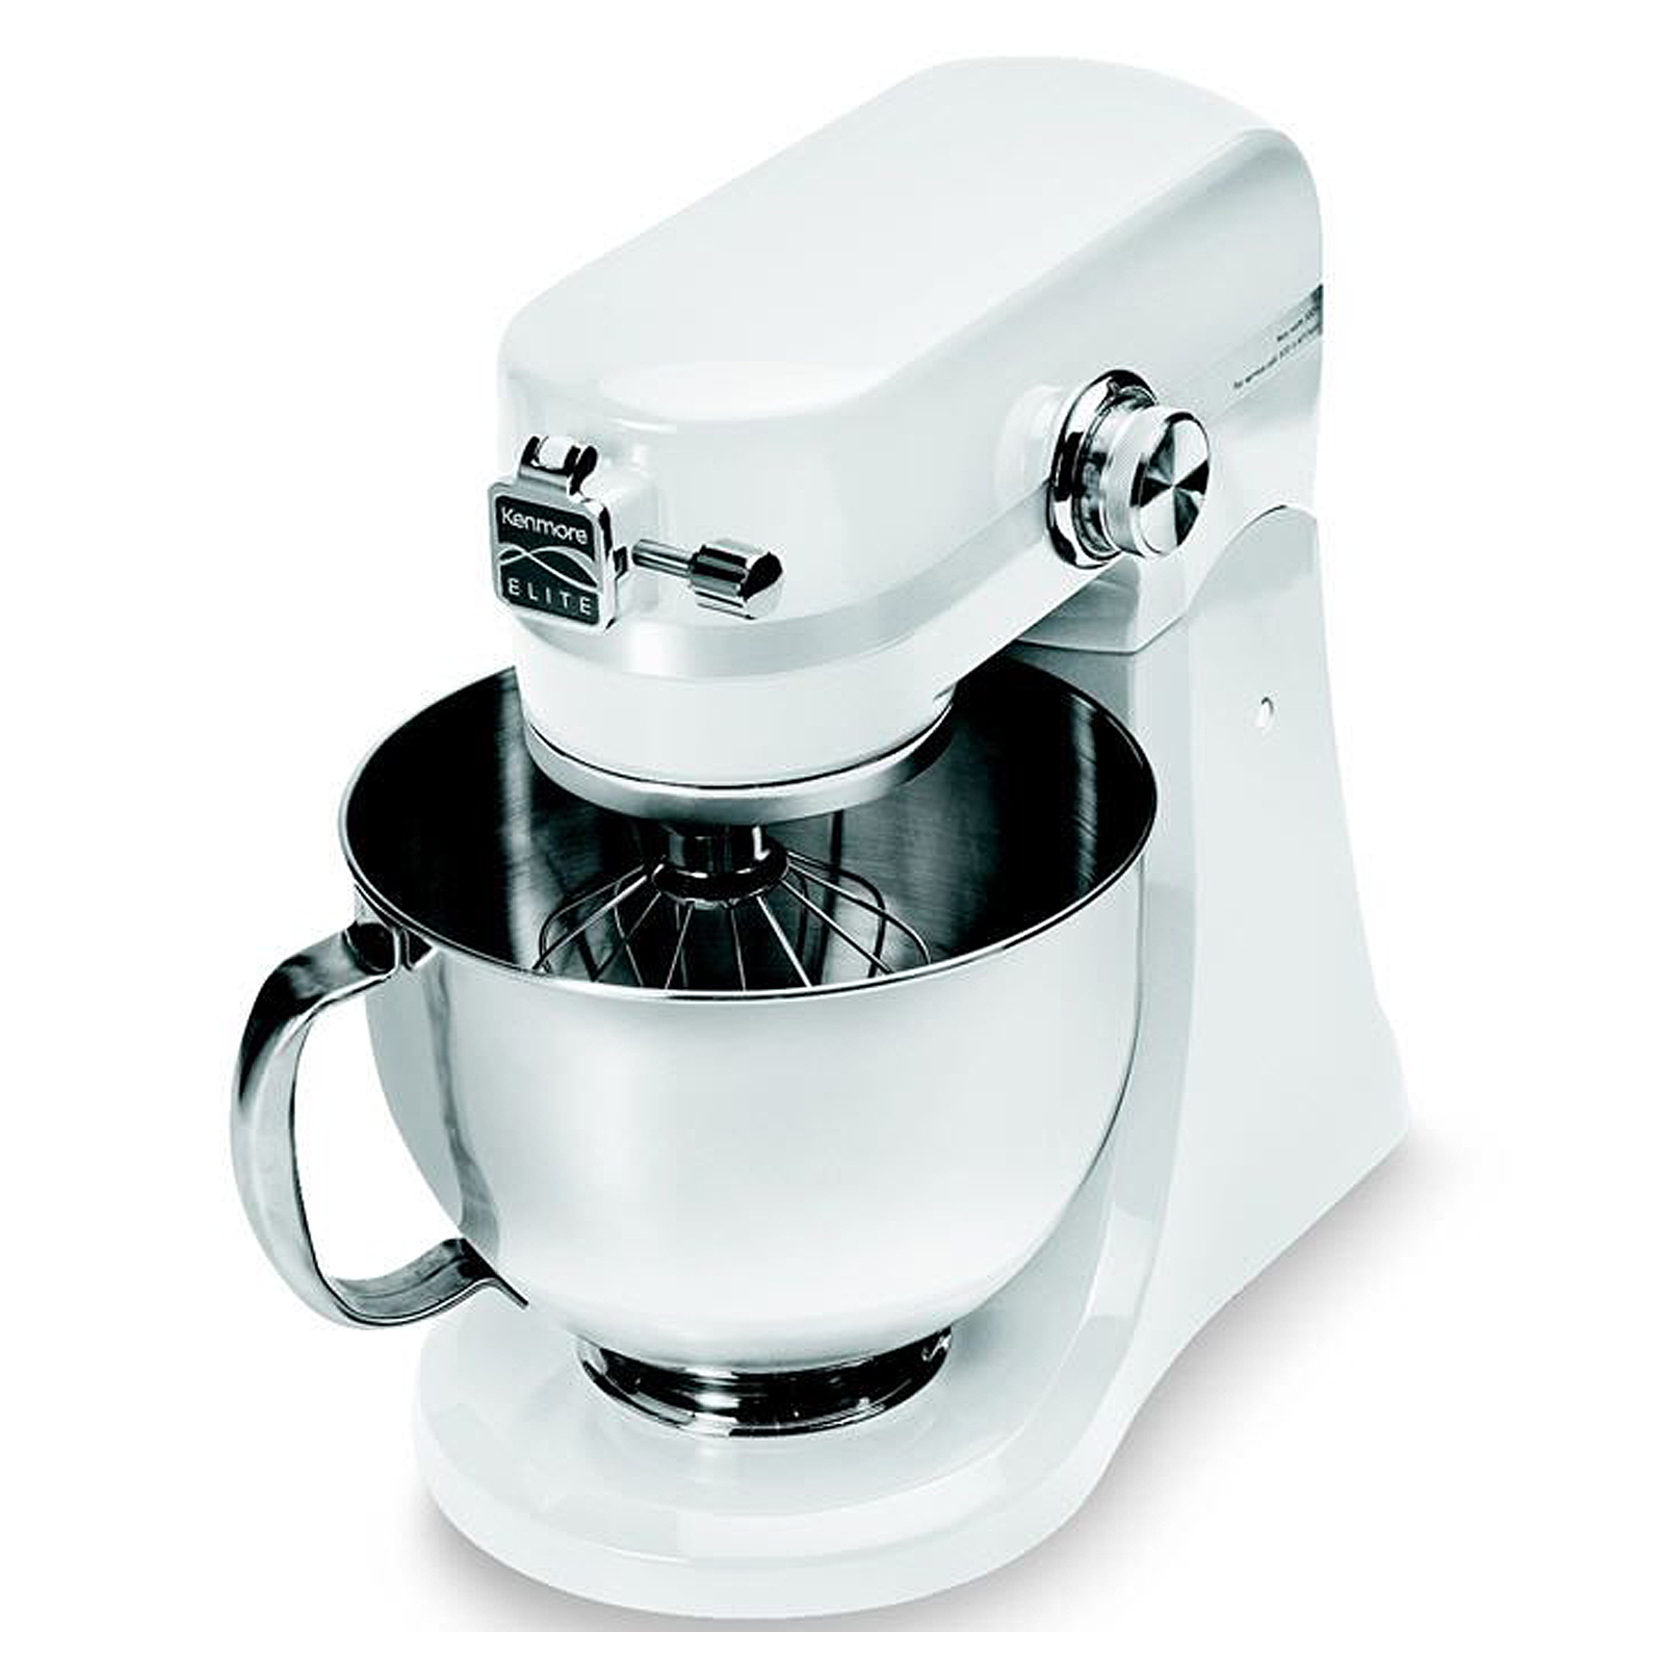 5-Qt-400-Watt-White-Stand-Mixer-with-Extra-3-Qt-Bowl